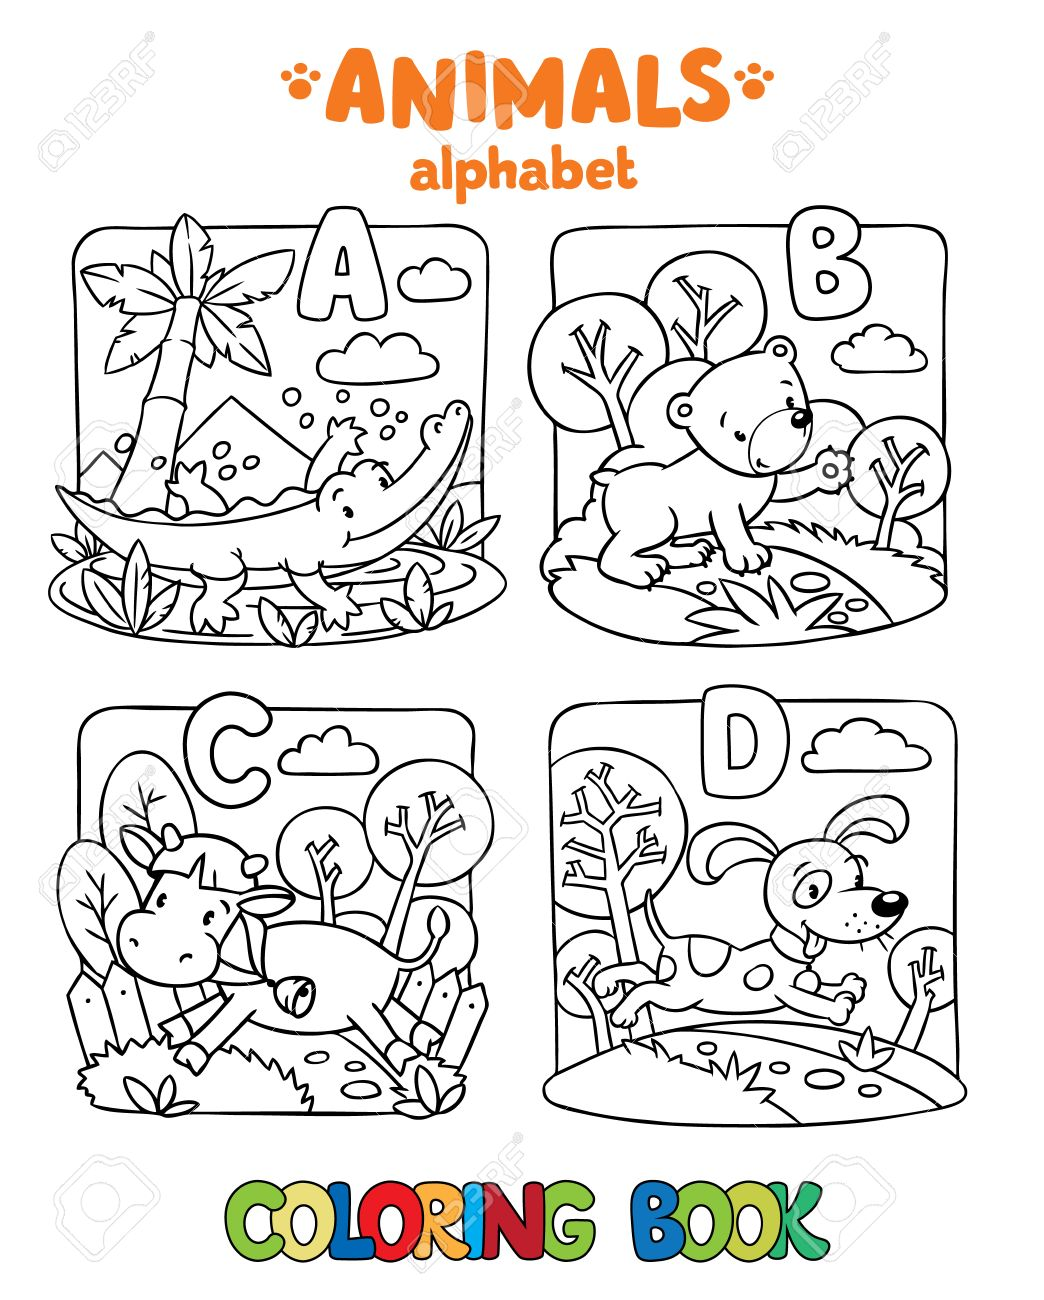 Coloring Book Or Coloring Picture Of Funny Alligator Bear Cow